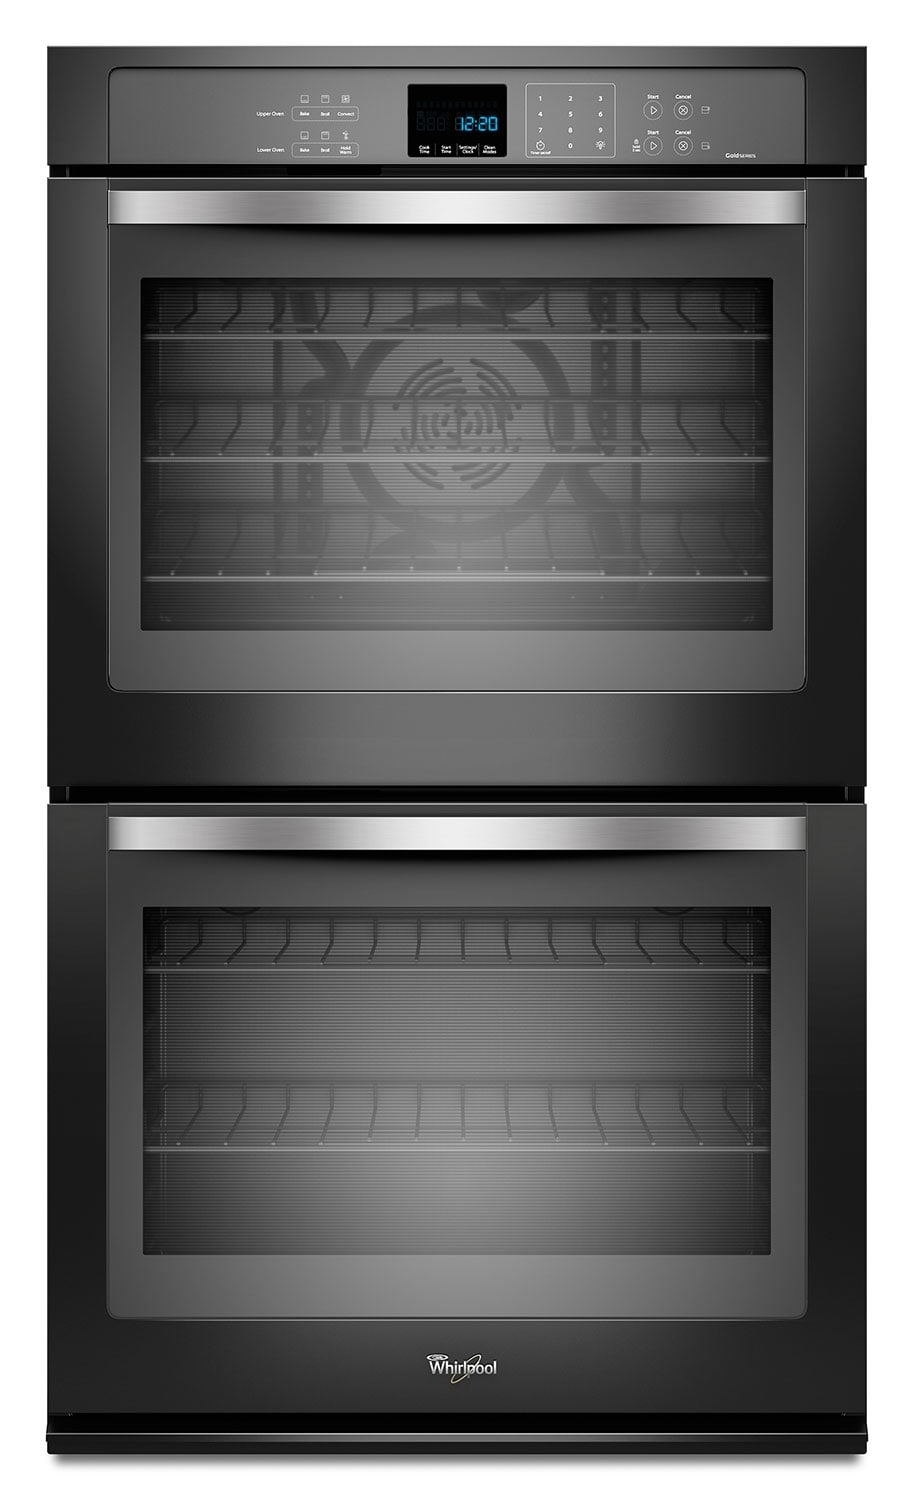 Cooking Products - Whirlpool Black Convection Double Wall Oven (10 Cu. Ft.) - WOD93EC0AE